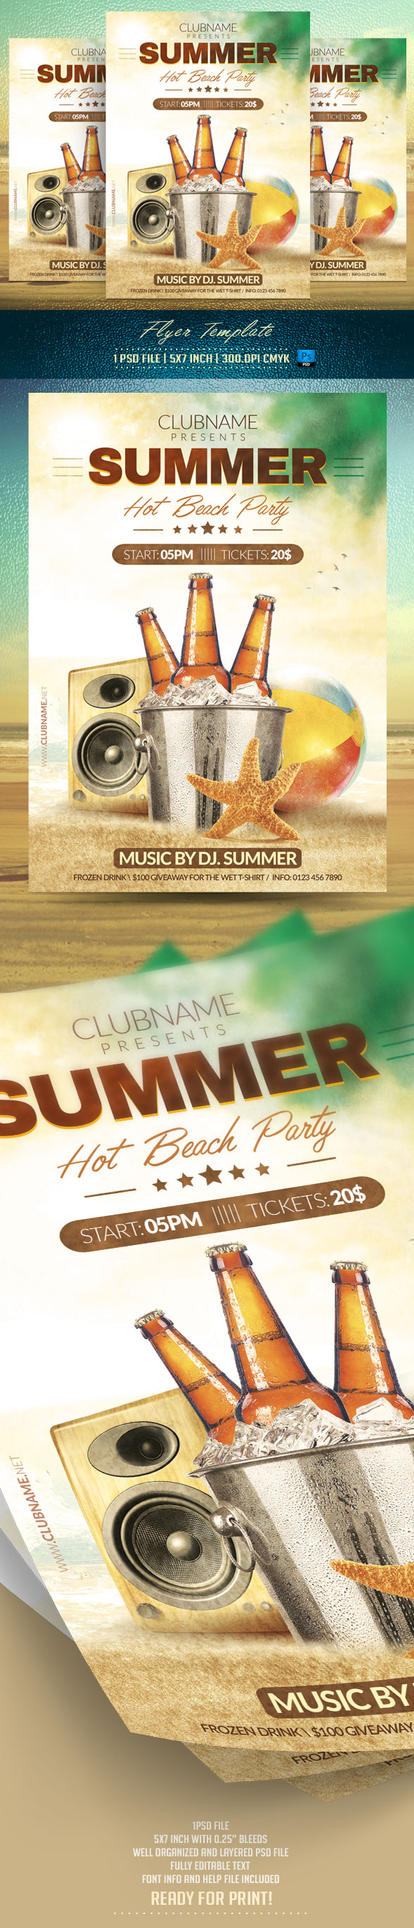 Summer Party Flyer Template by BriellDesign